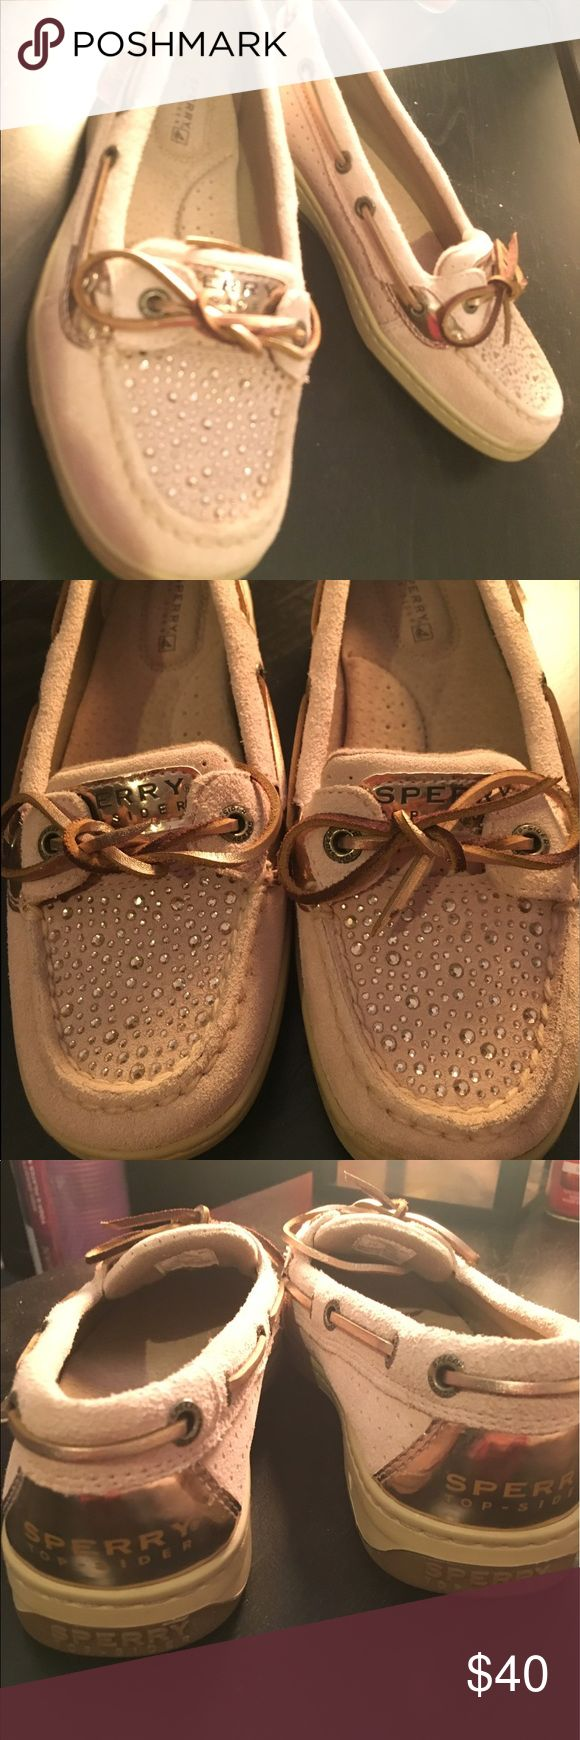 Sperry Angelfish suede/rhinestone; 6M NEVER WORN Angelfish light Pink-tan-suede/ rhinestone. Never worn! Size 6. Super cute! Super chic! Sperry Top-Sider Shoes Flats & Loafers